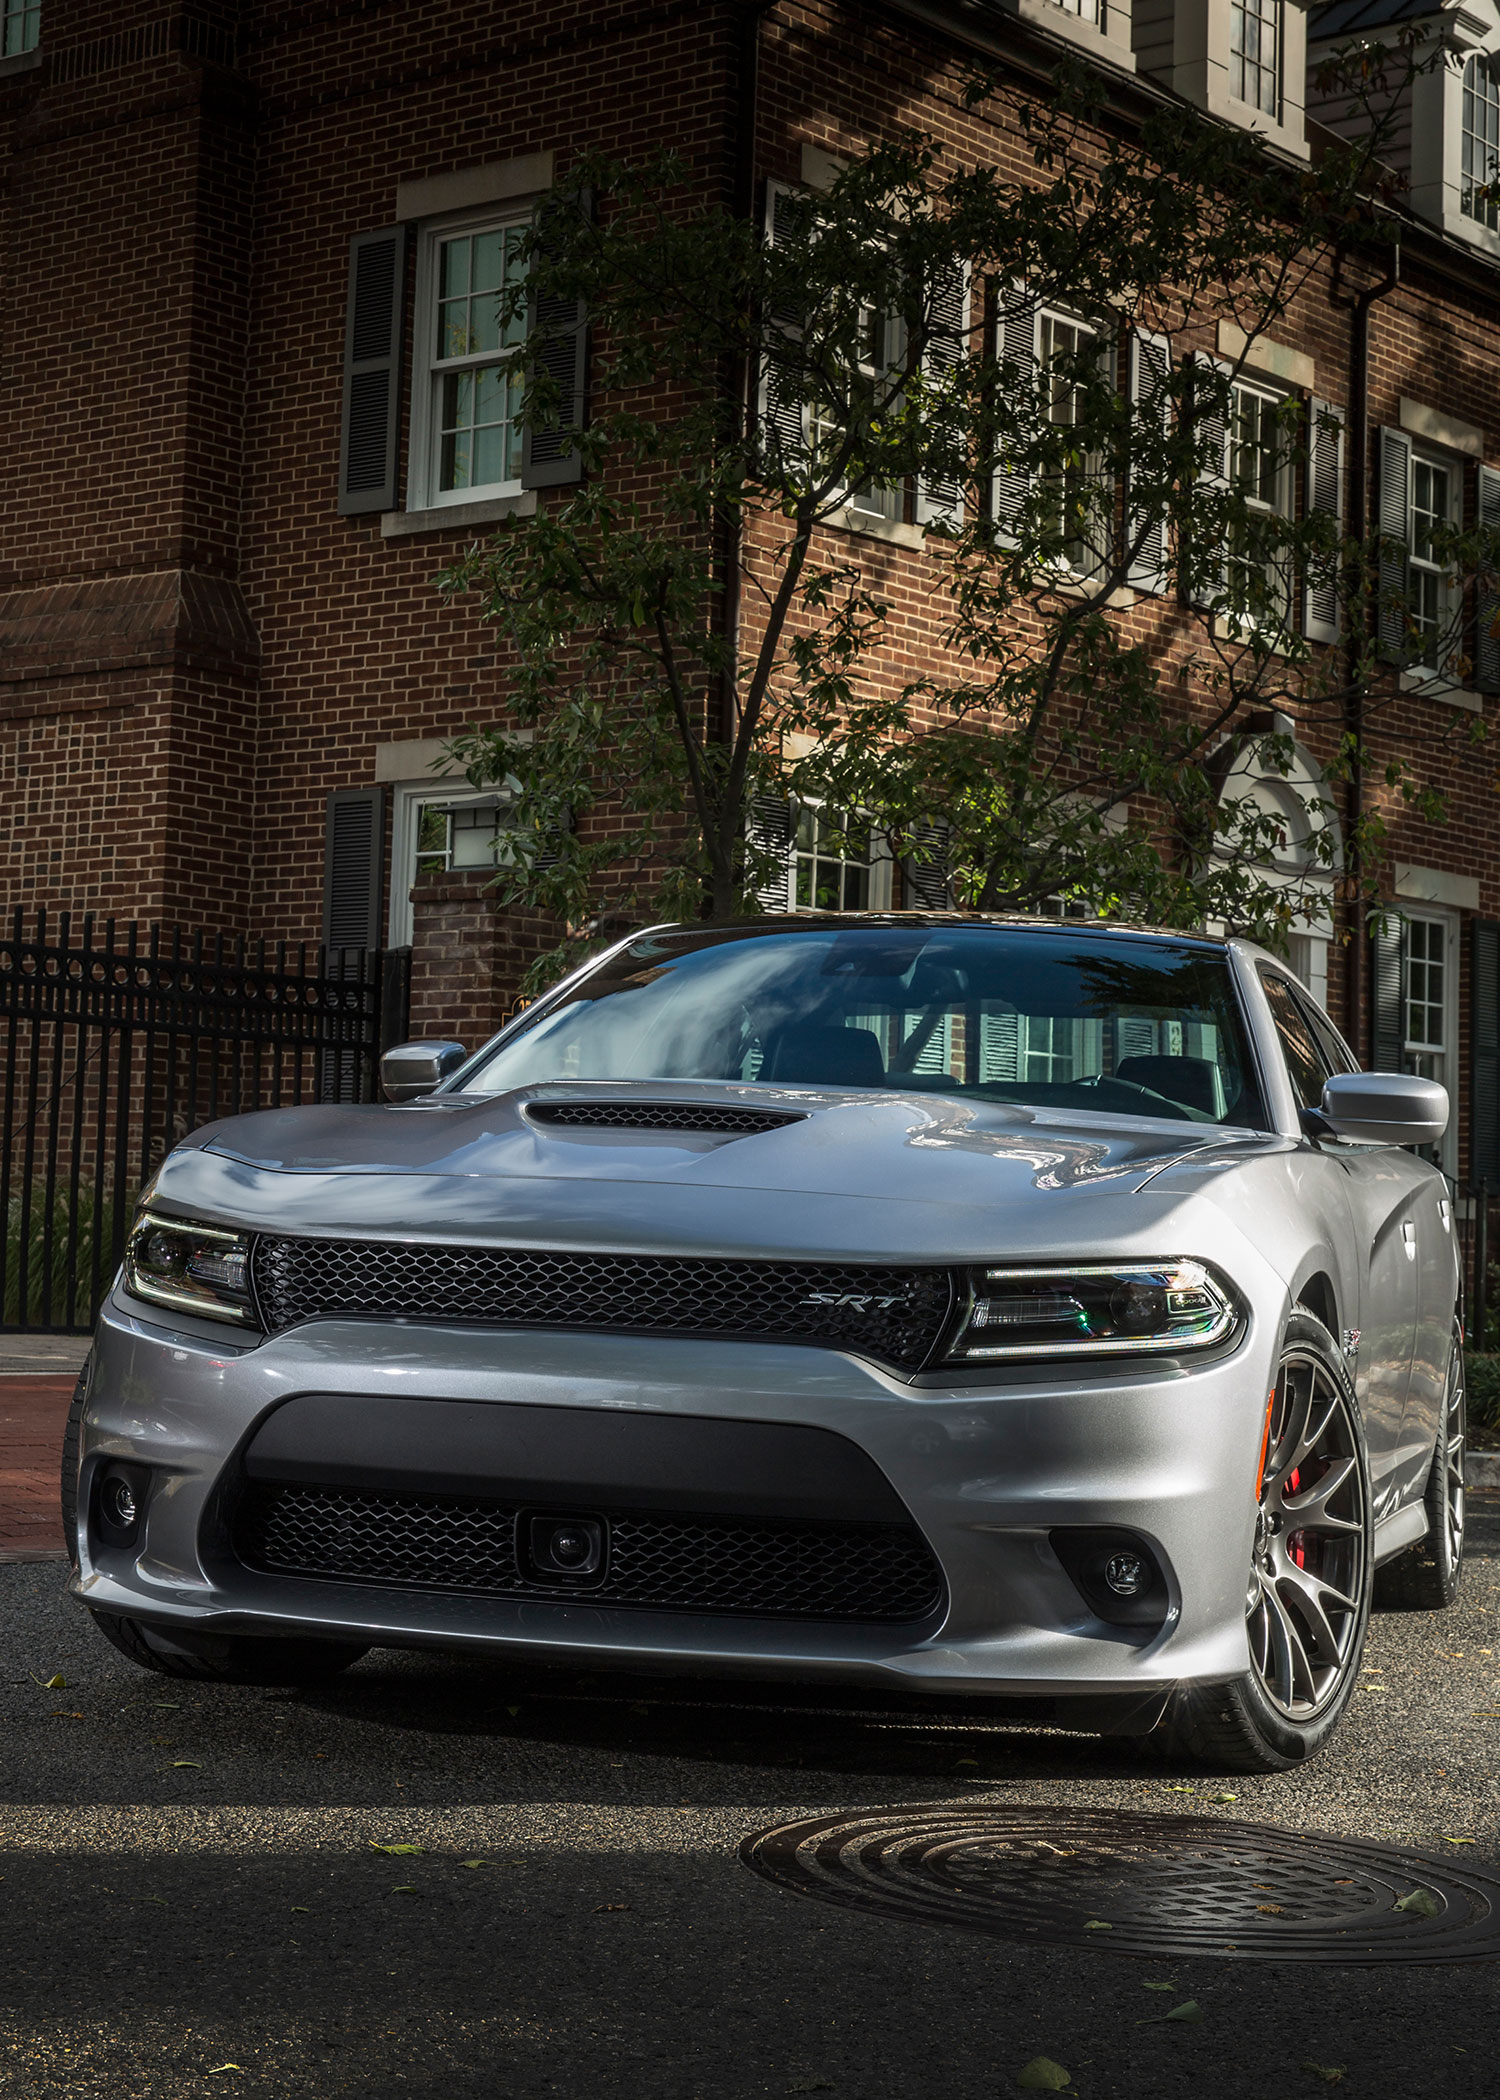 Charger Rt Dodge Charger R T Dodge Black Tires Muscle: 2015 Dodge Charger SXT, R/T, And SRT 392 Review